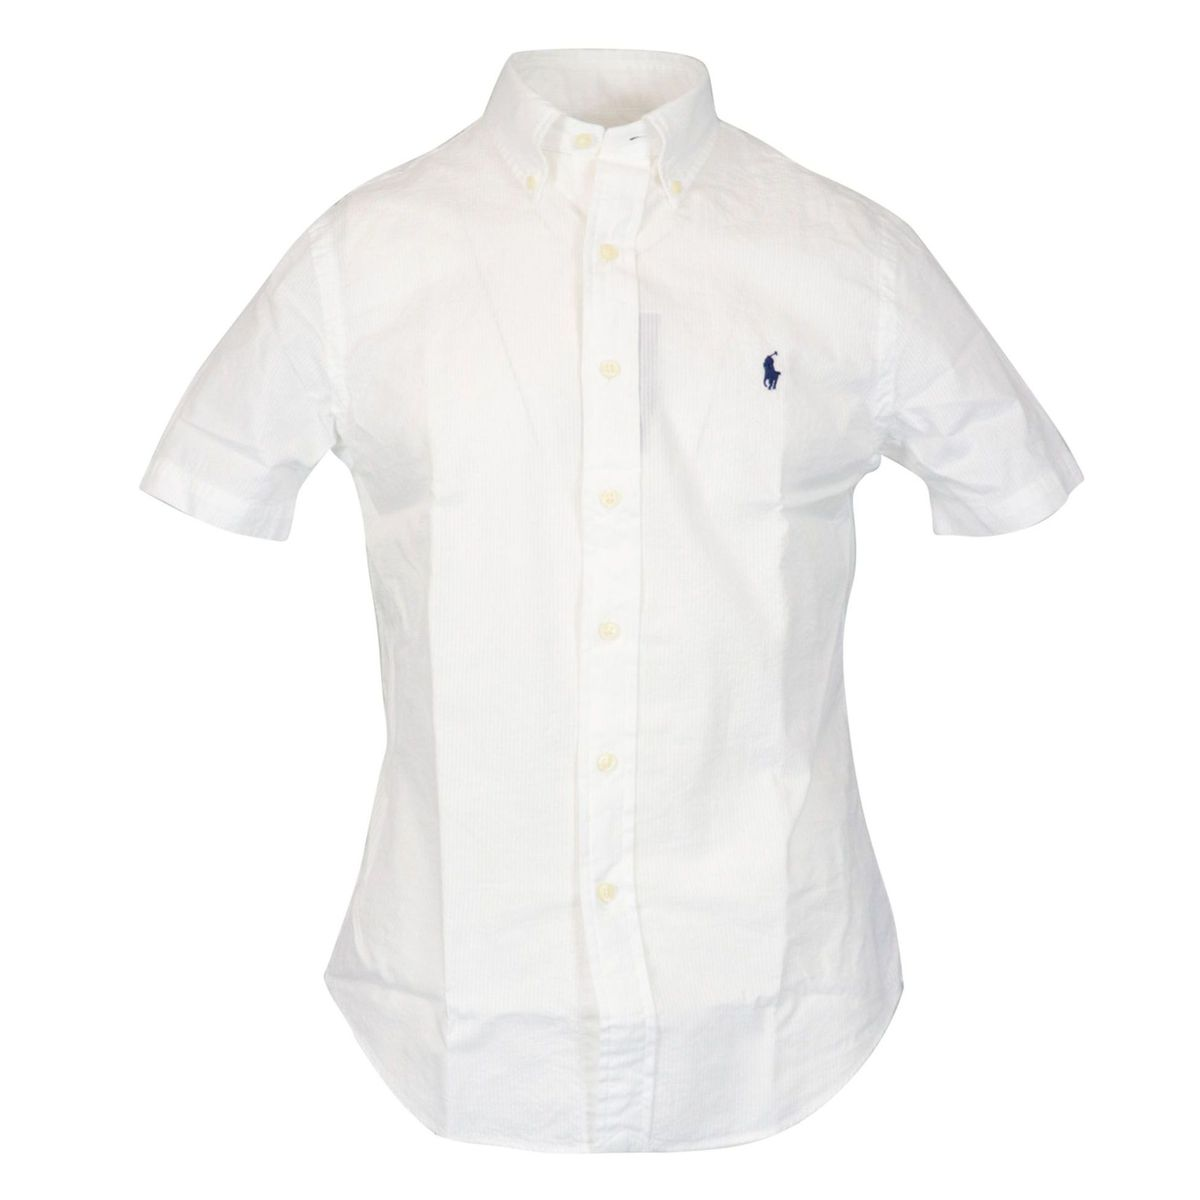 Custom-fit button-down cotton shirt White Polo Ralph Lauren